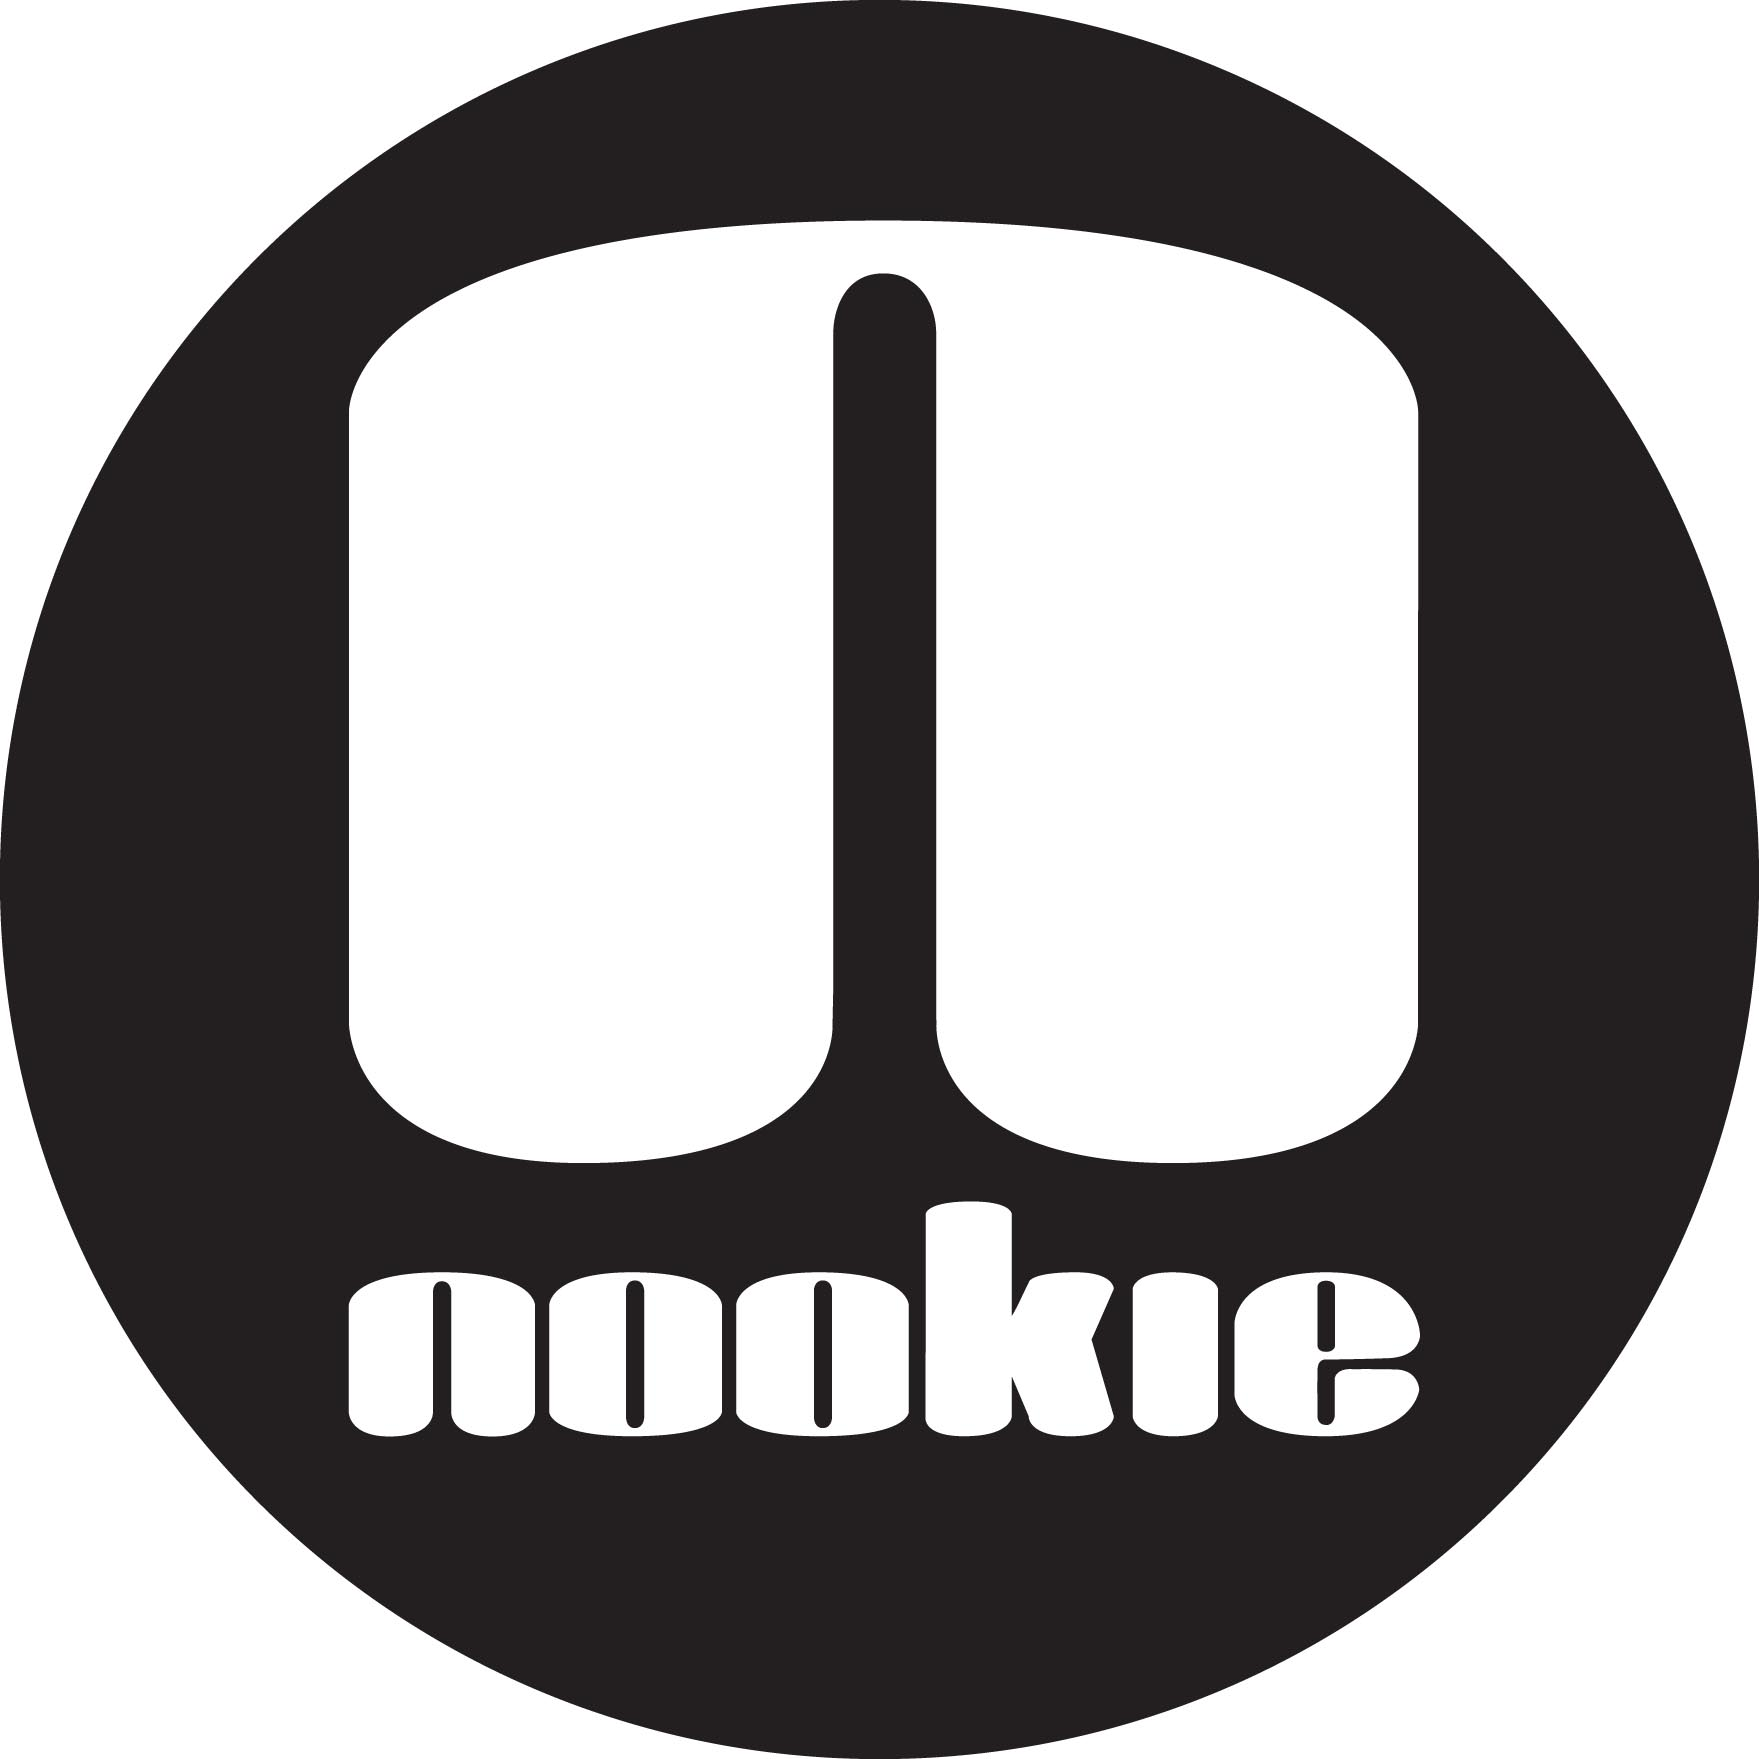 Nookie Logo Sticker Black Circle